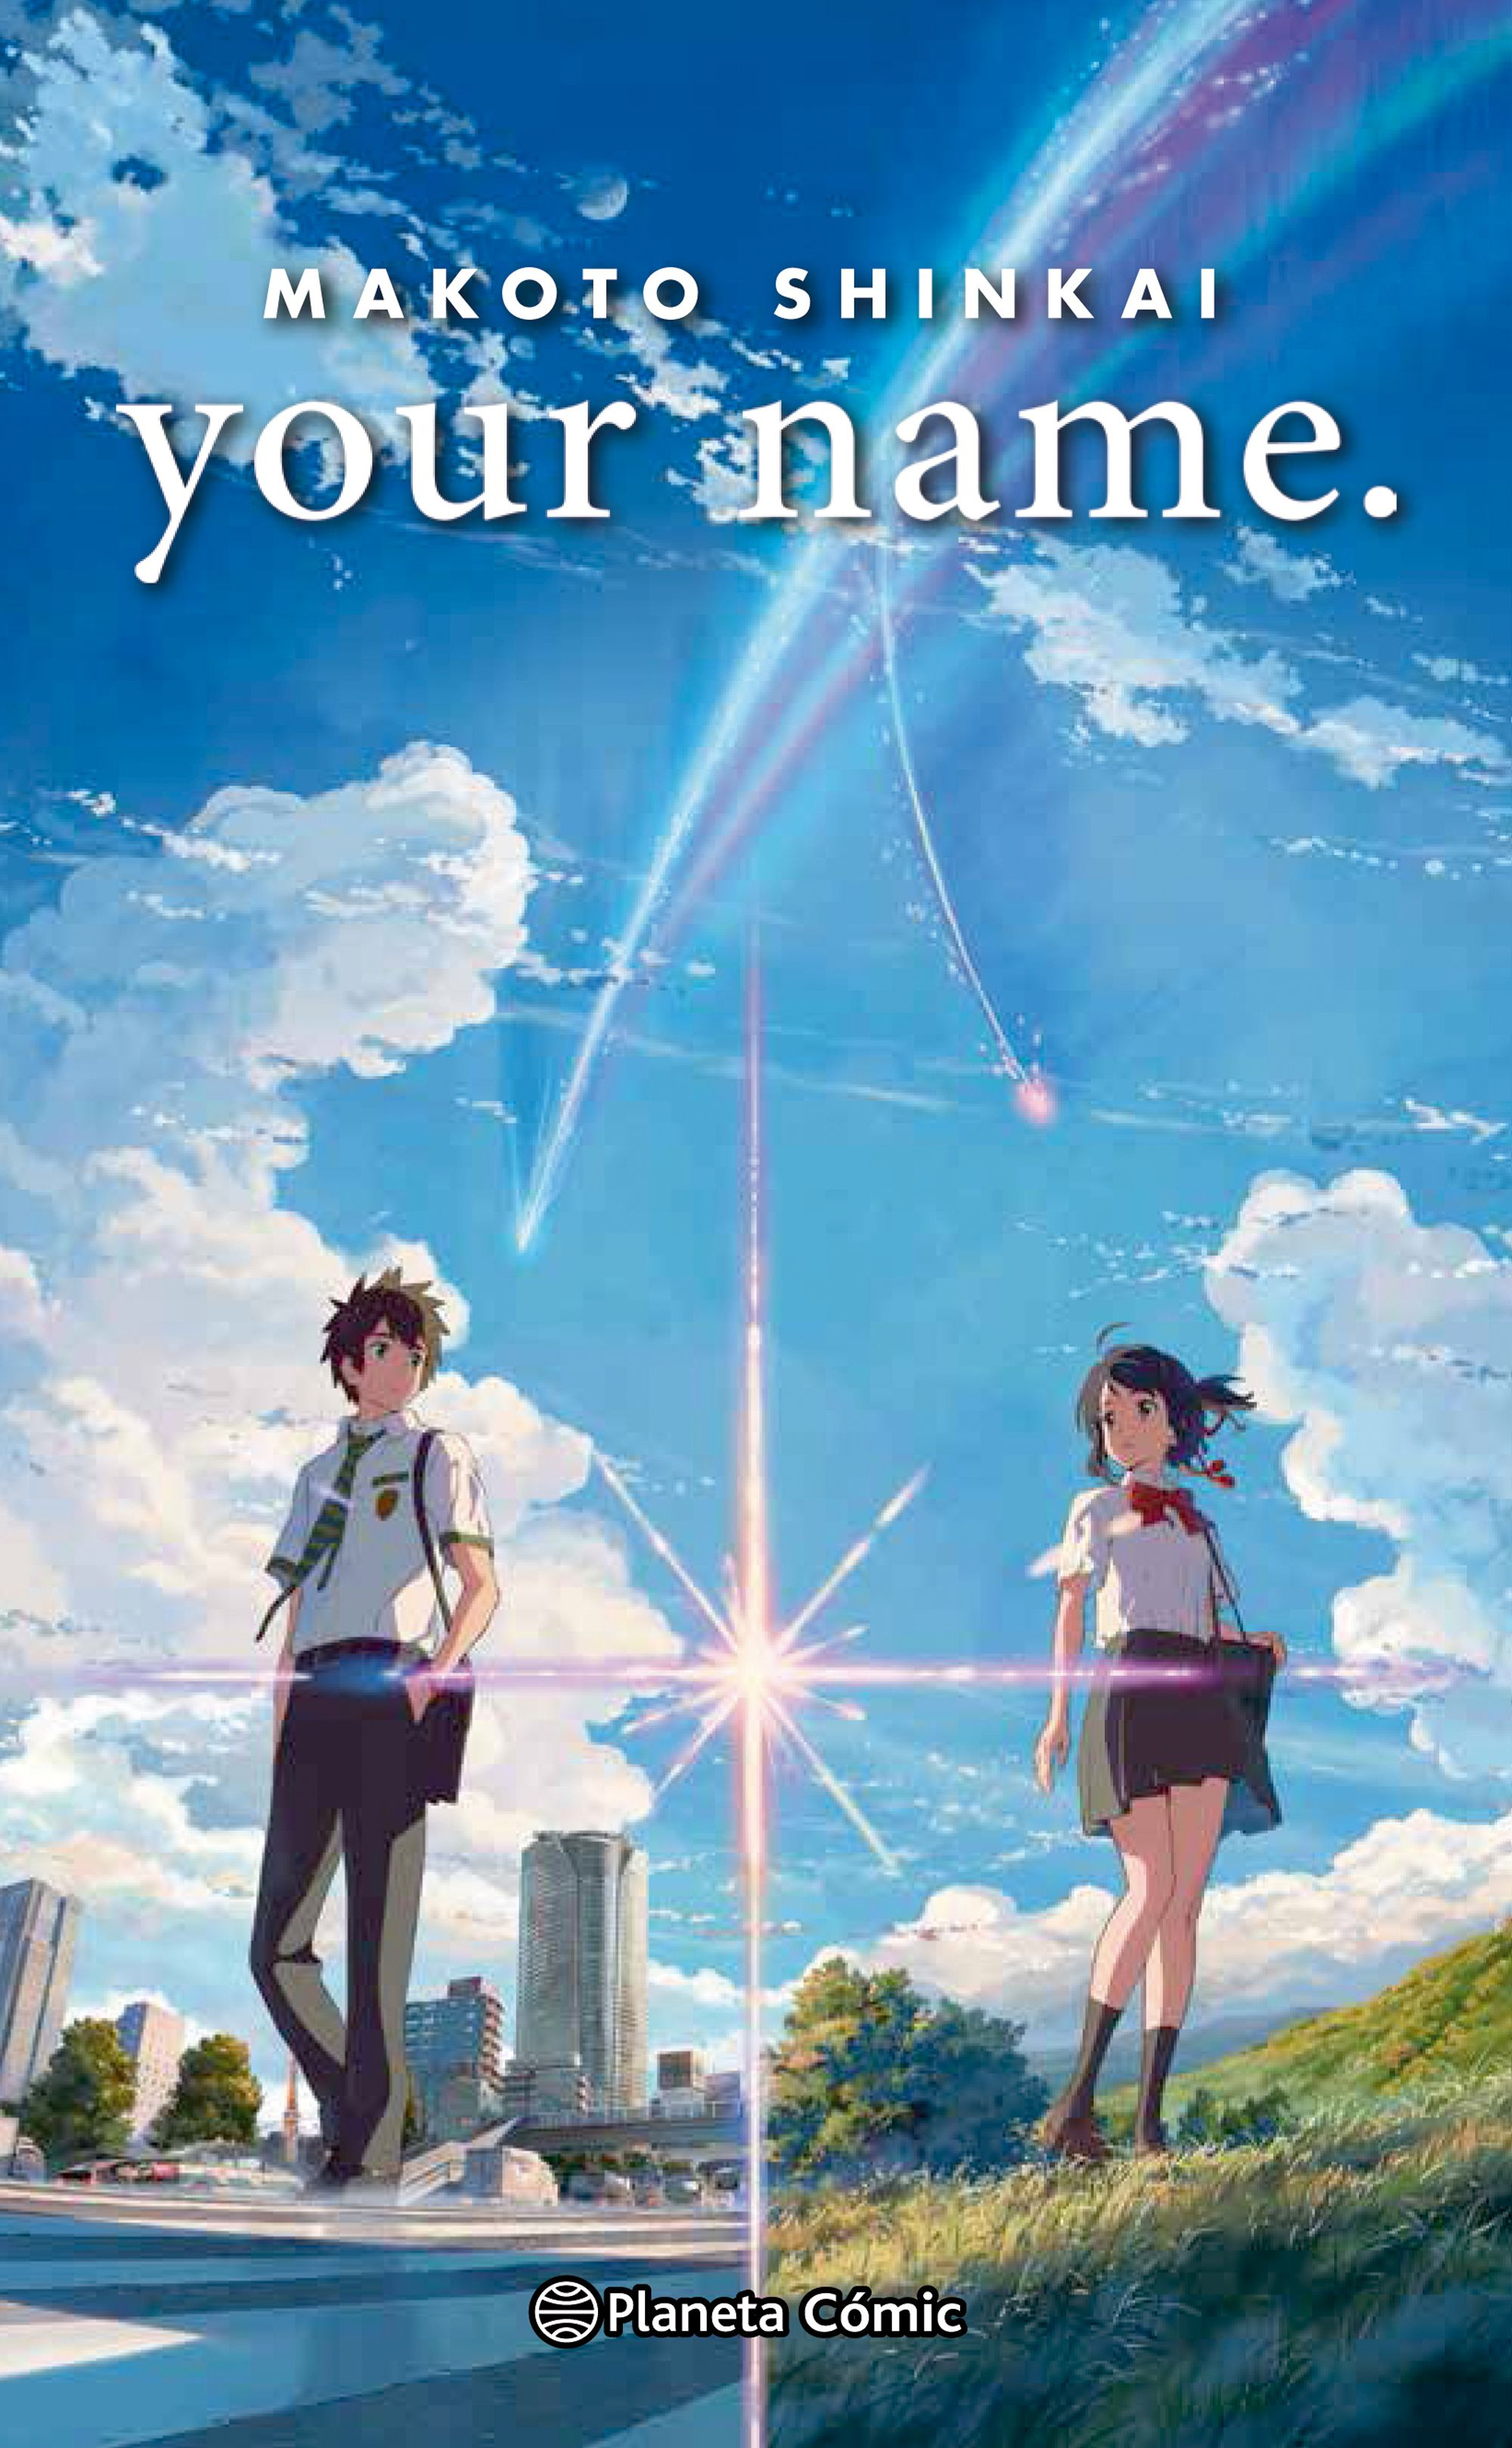 Cine y series de animacion - Página 9 Portada_your-name-novela_makoto-shinkai_201703091007